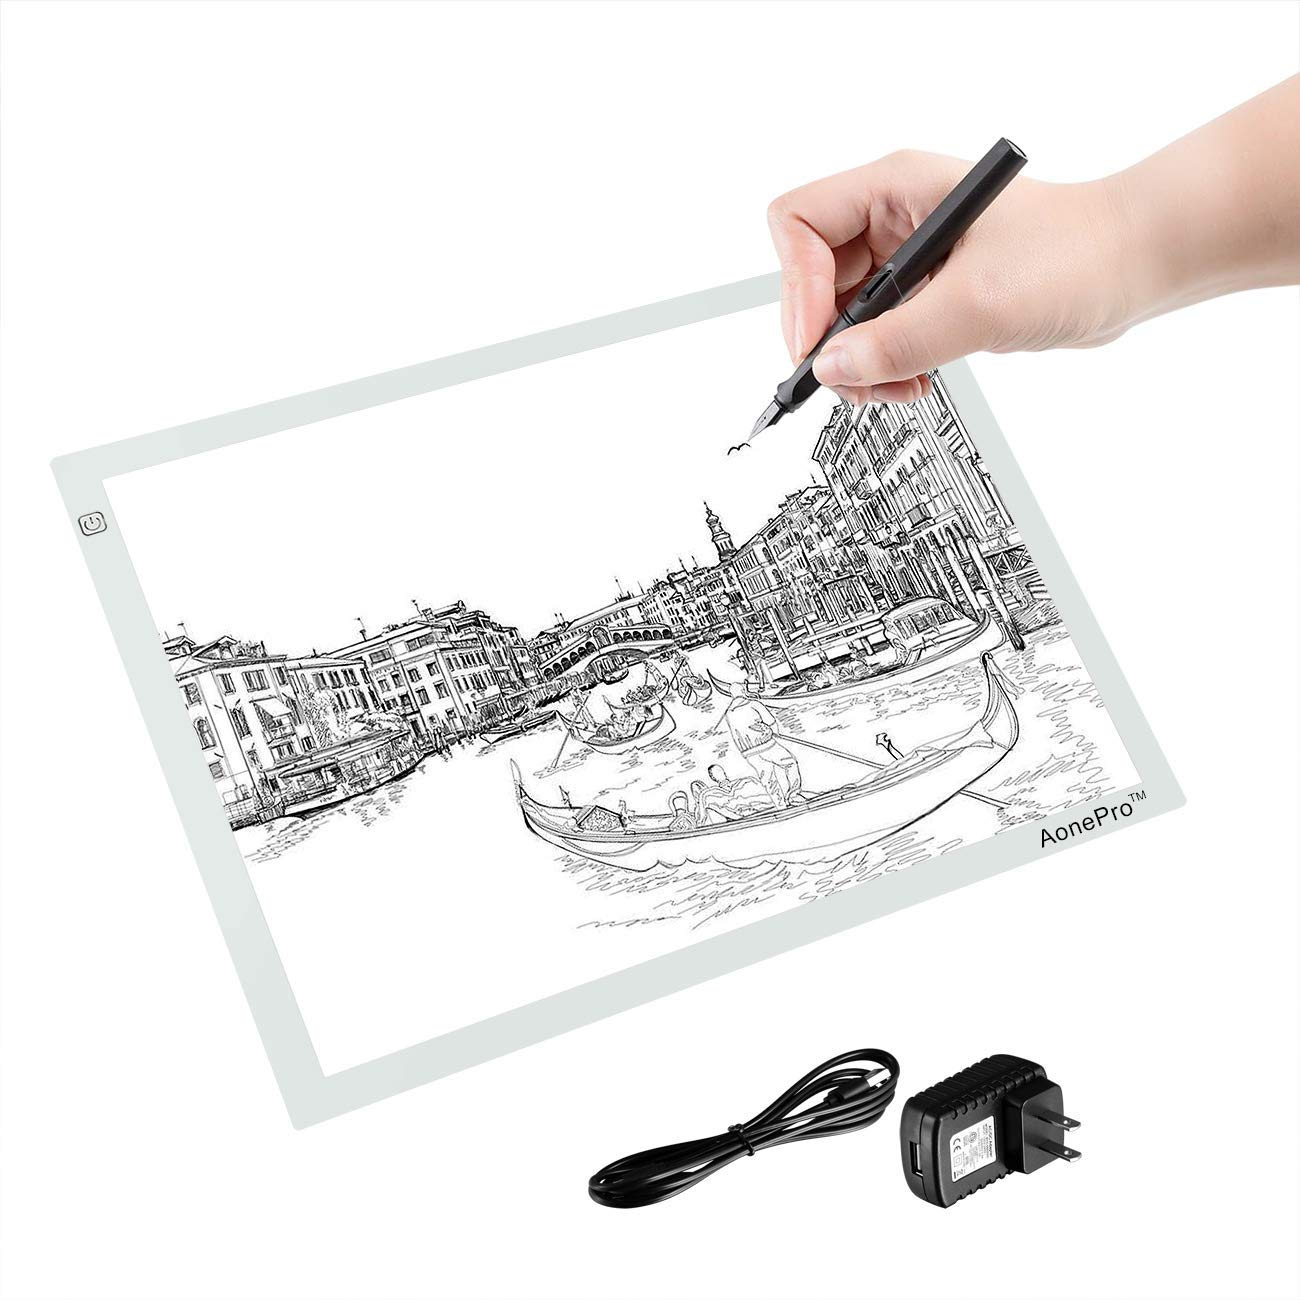 A3 LED Light Box Tracing Pad USB Powered Ultra-Thin 19 inch Drawing Light Pad for Tattoo Drawing, Stencil, Sketching - White